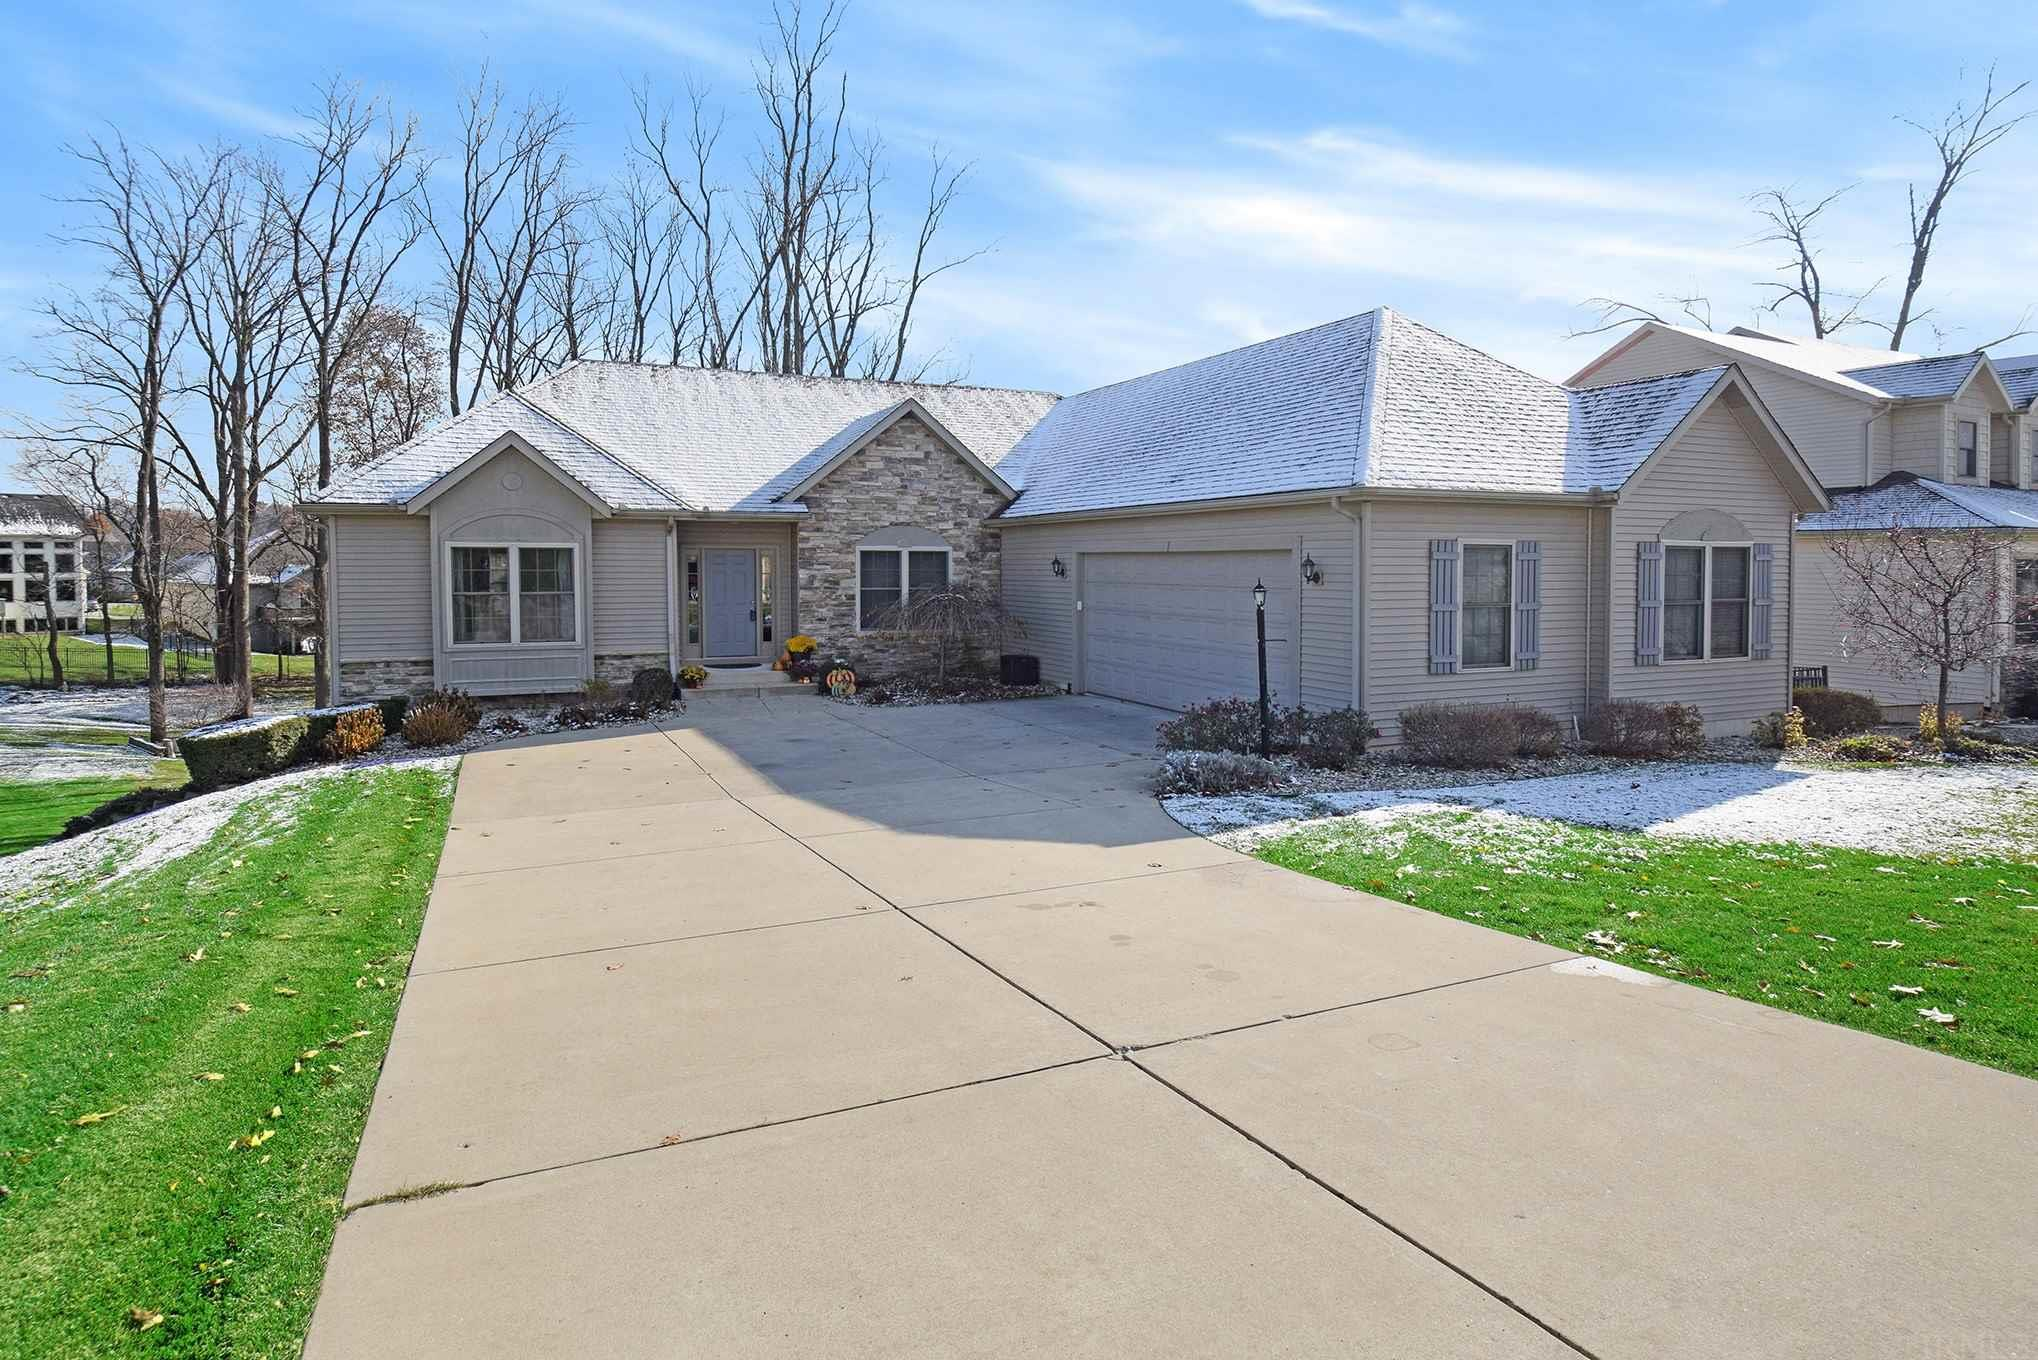 53114 Grassy Knoll South Bend, IN 46628